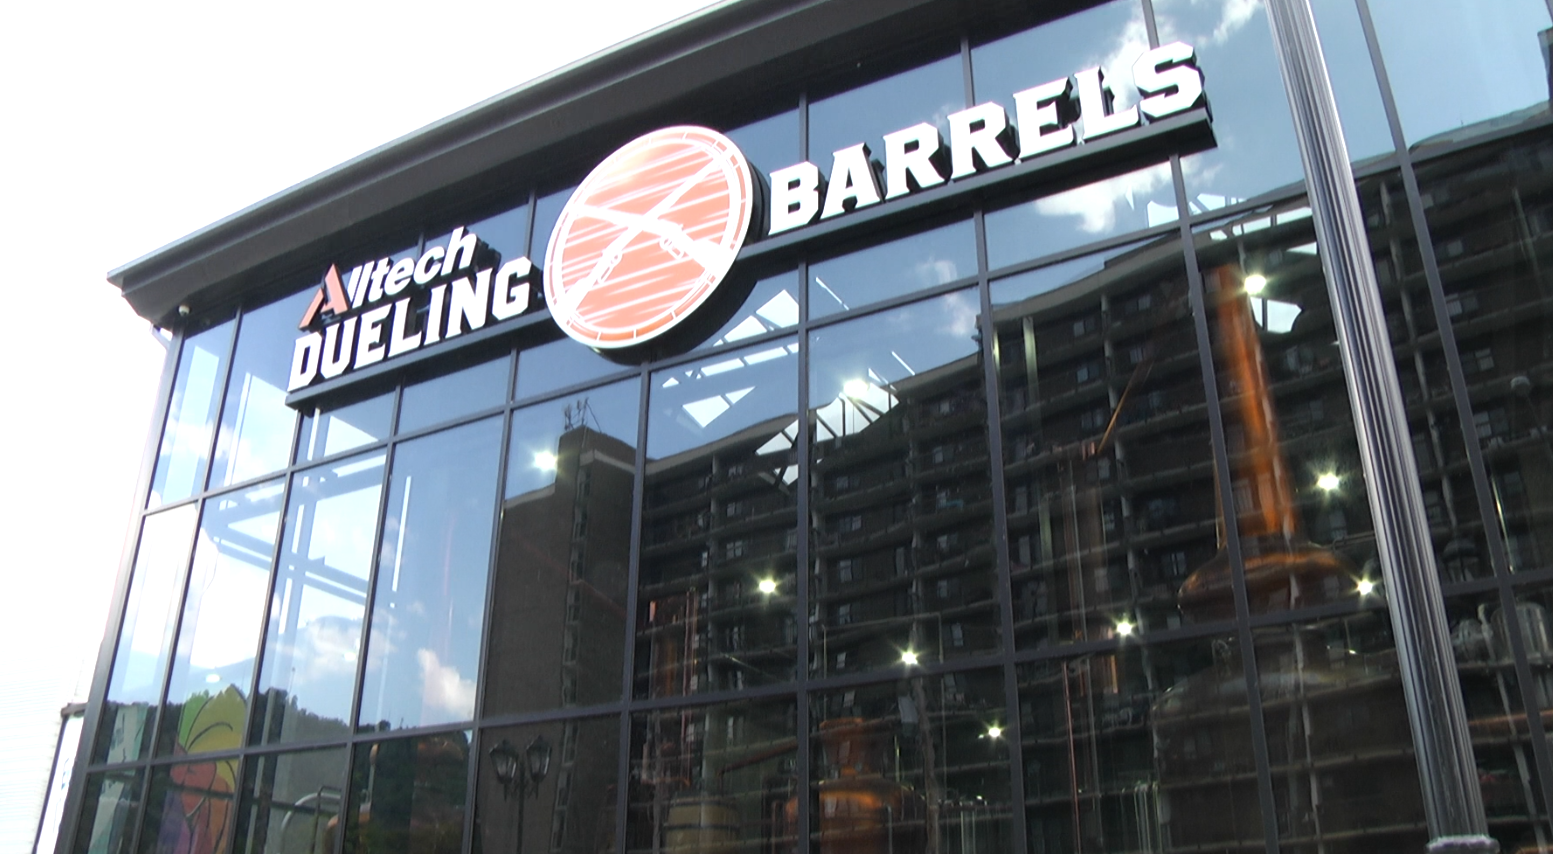 Reports say Dueling Barrels could remain closed, multiple employees laid off